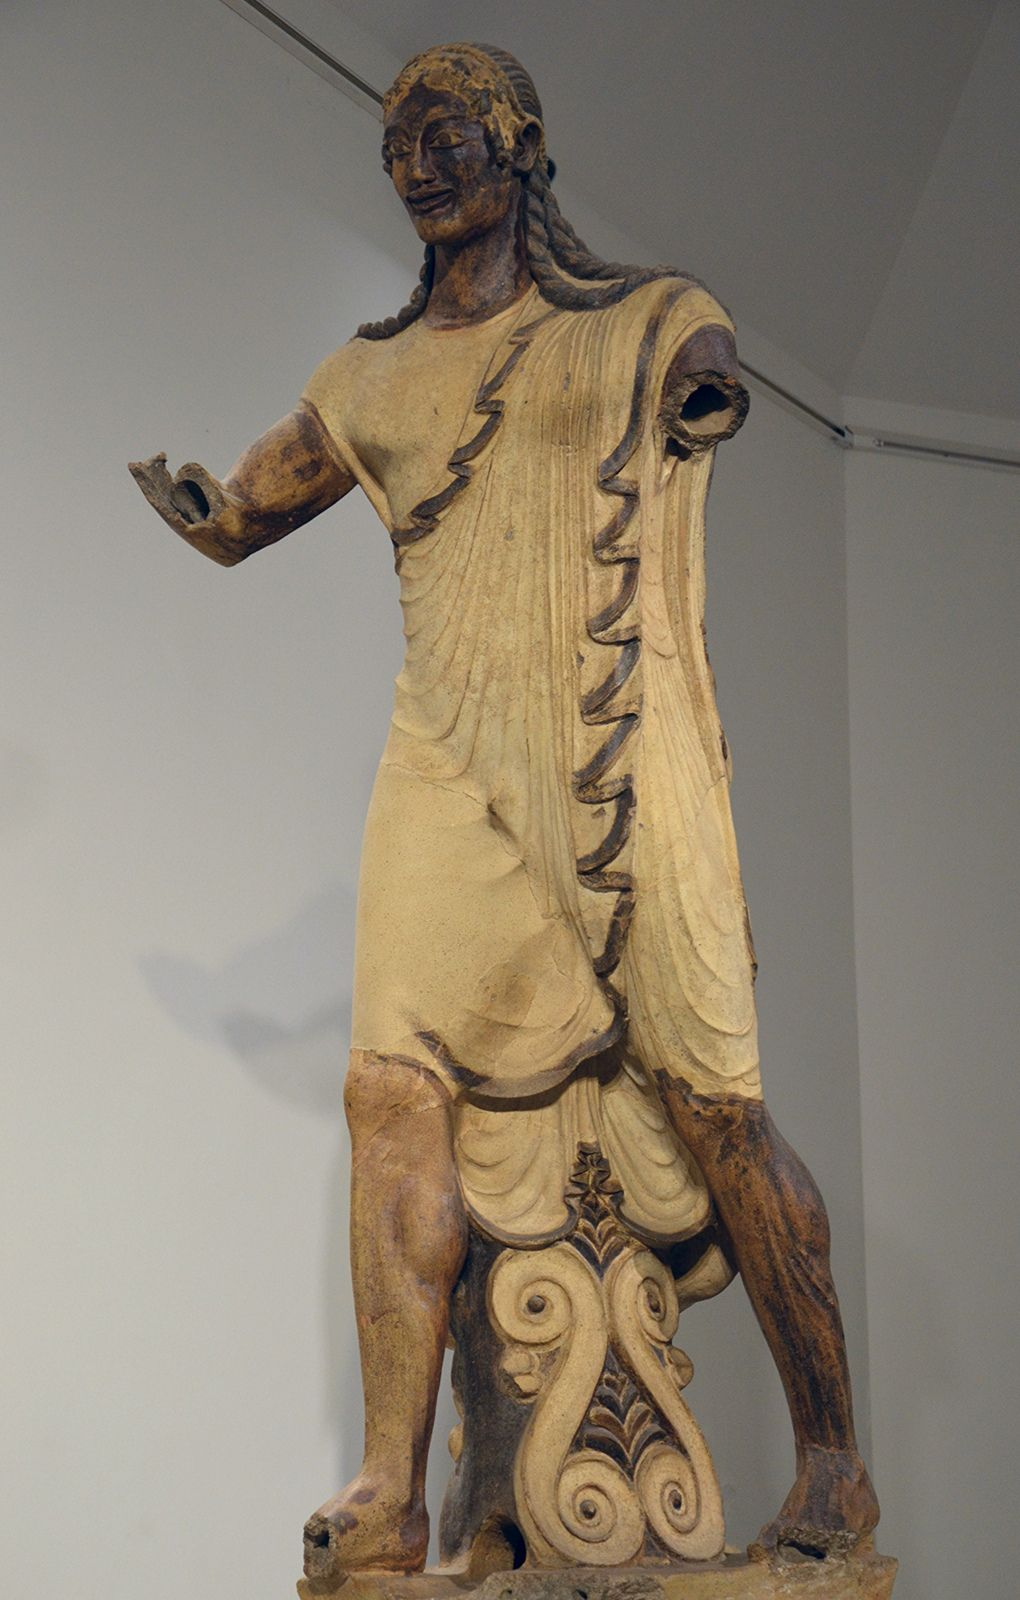 Apollo of Veii by Carole Raddato -- Large scale terracotta sculpture depicting the Apollo of Veii (the Etruscan Aplu). From the roof of the Portonaccio Temple at Veii (Italy ), around 510 BCE. (National Etruscan Museum of Villa Giulia, Rome )